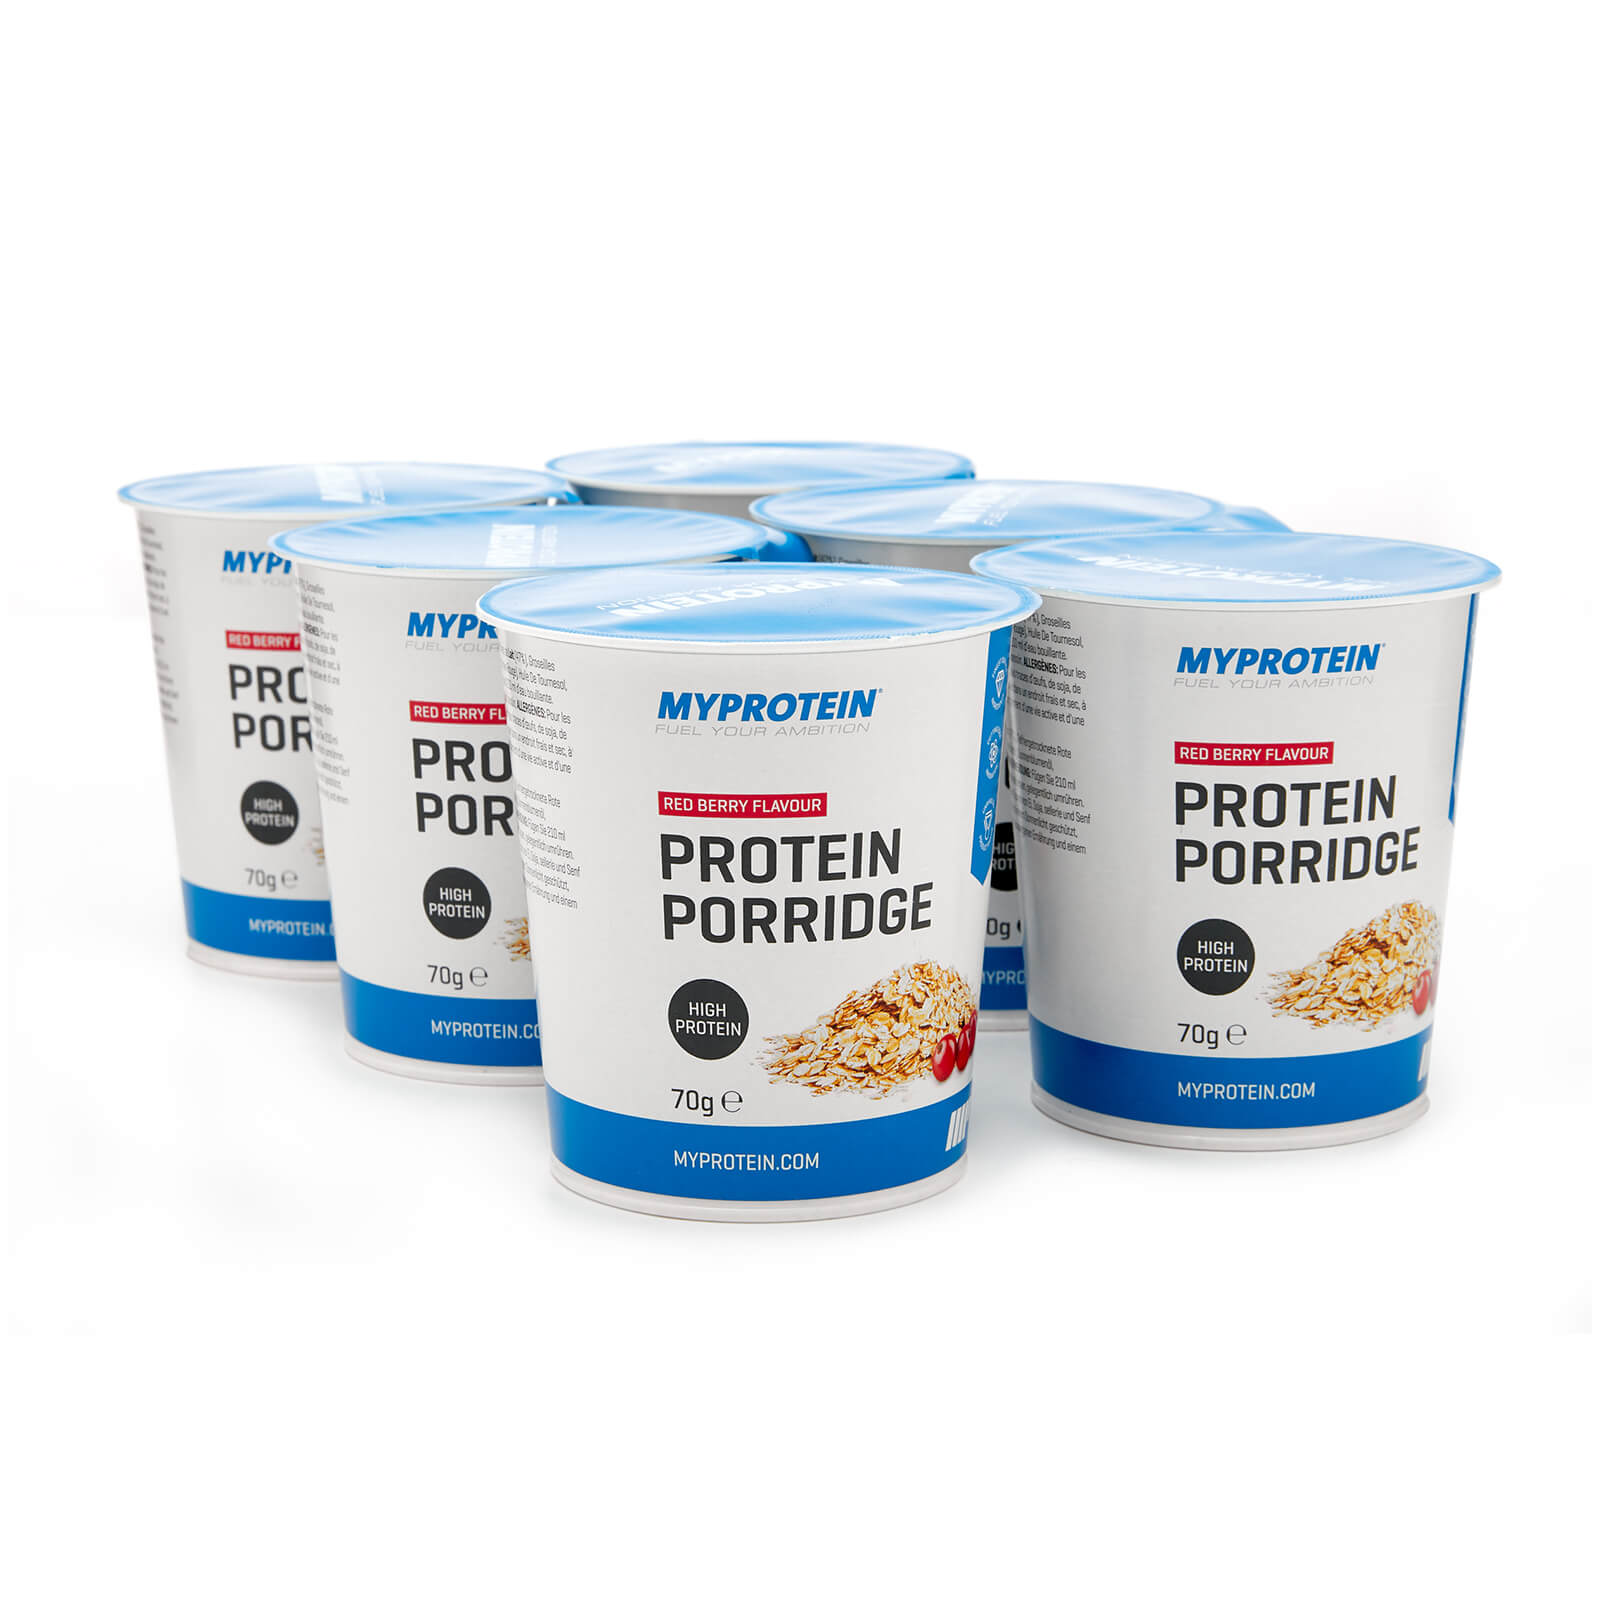 Protein Porridge Pots - Red Berry, 6 x 70g